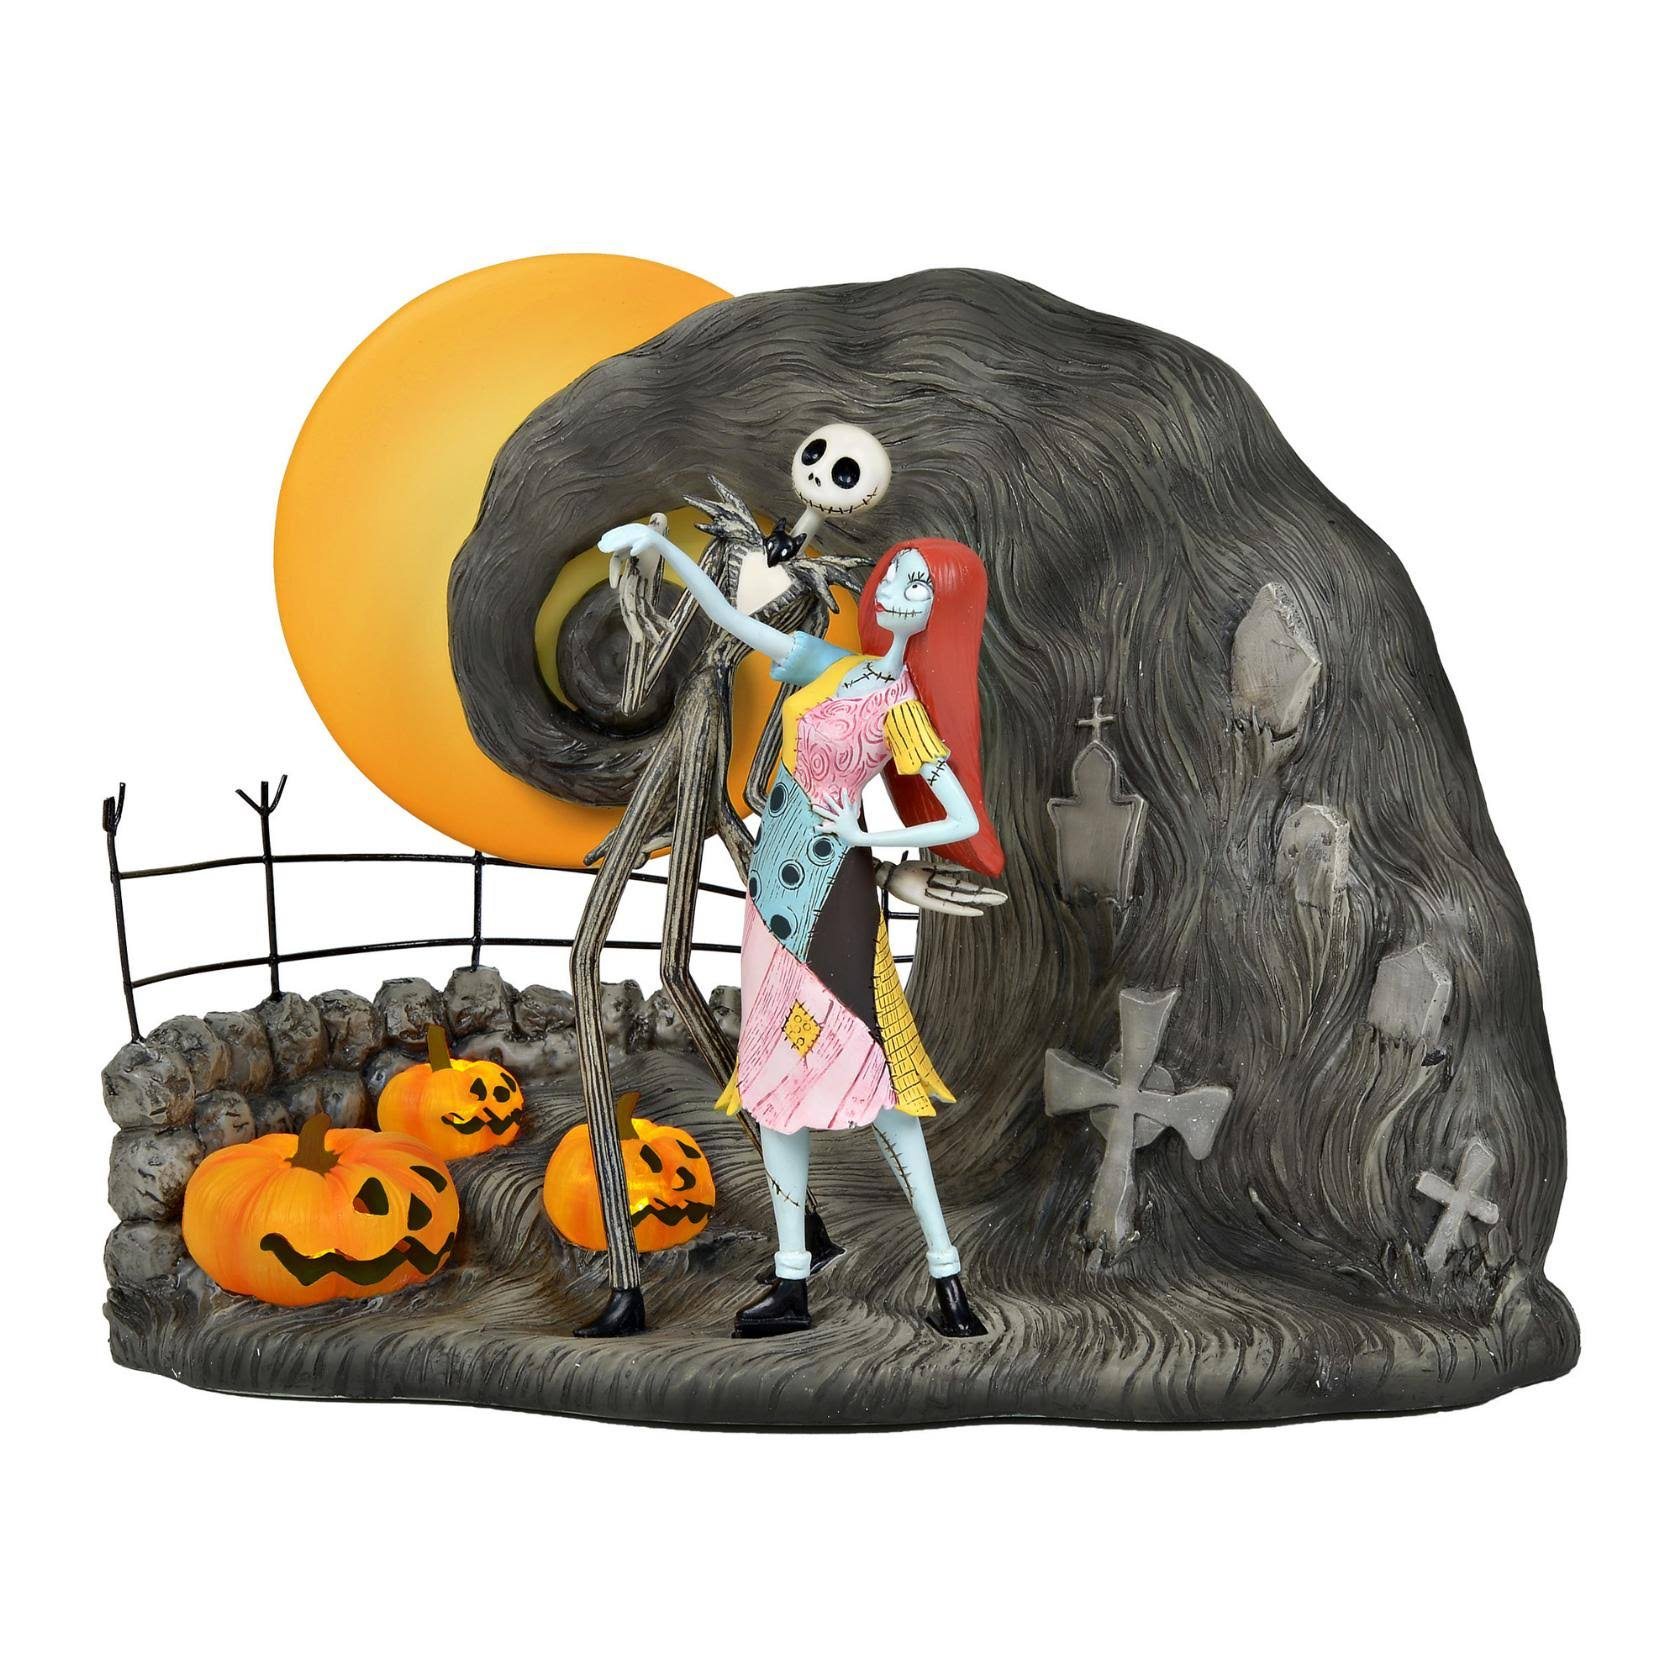 Disney Nightmare Before Christmas 6000410 Jack and Sally Figurine